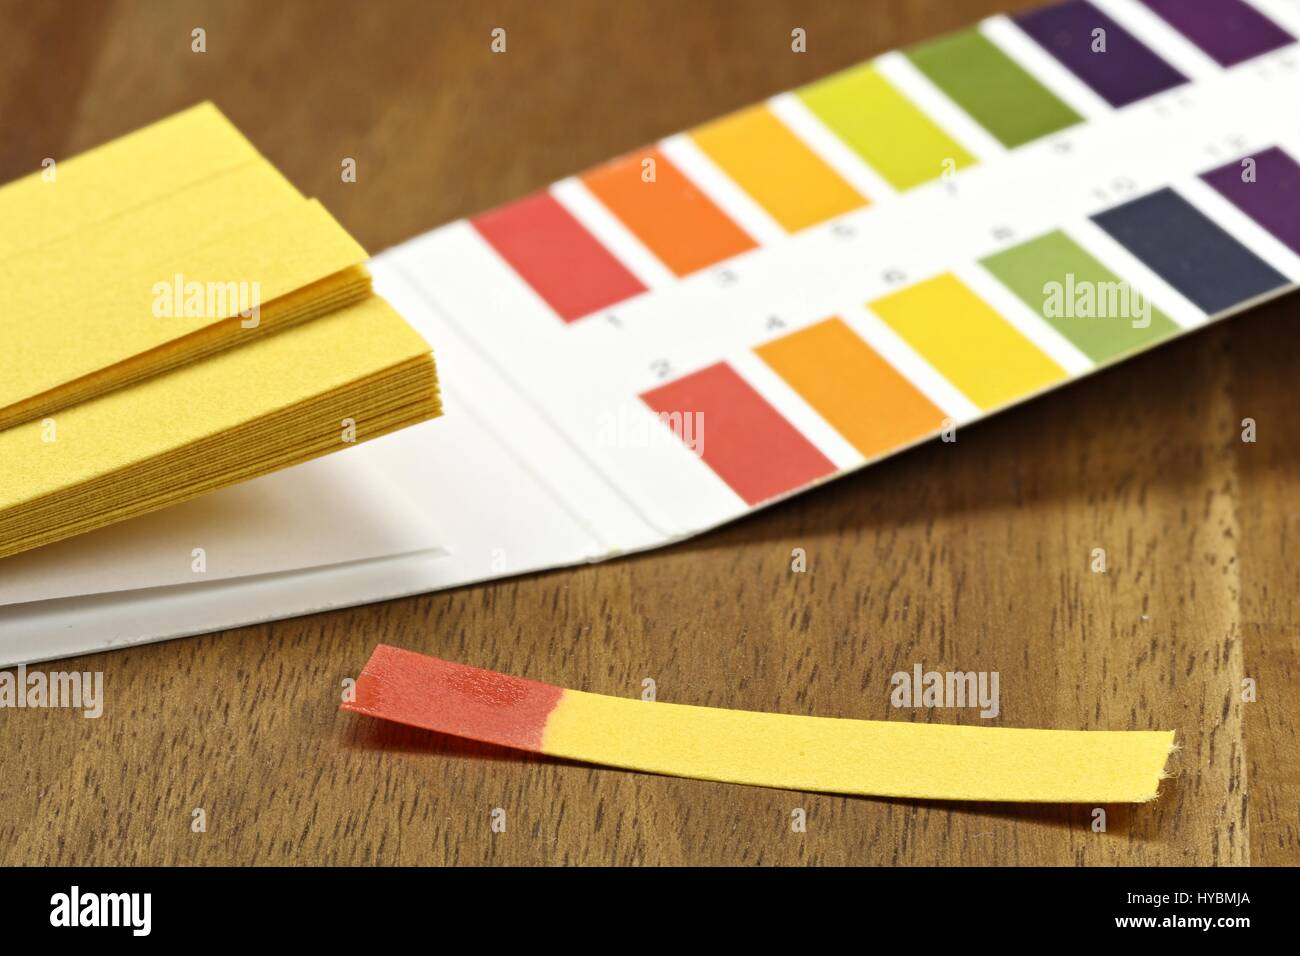 universal indicator paper scale